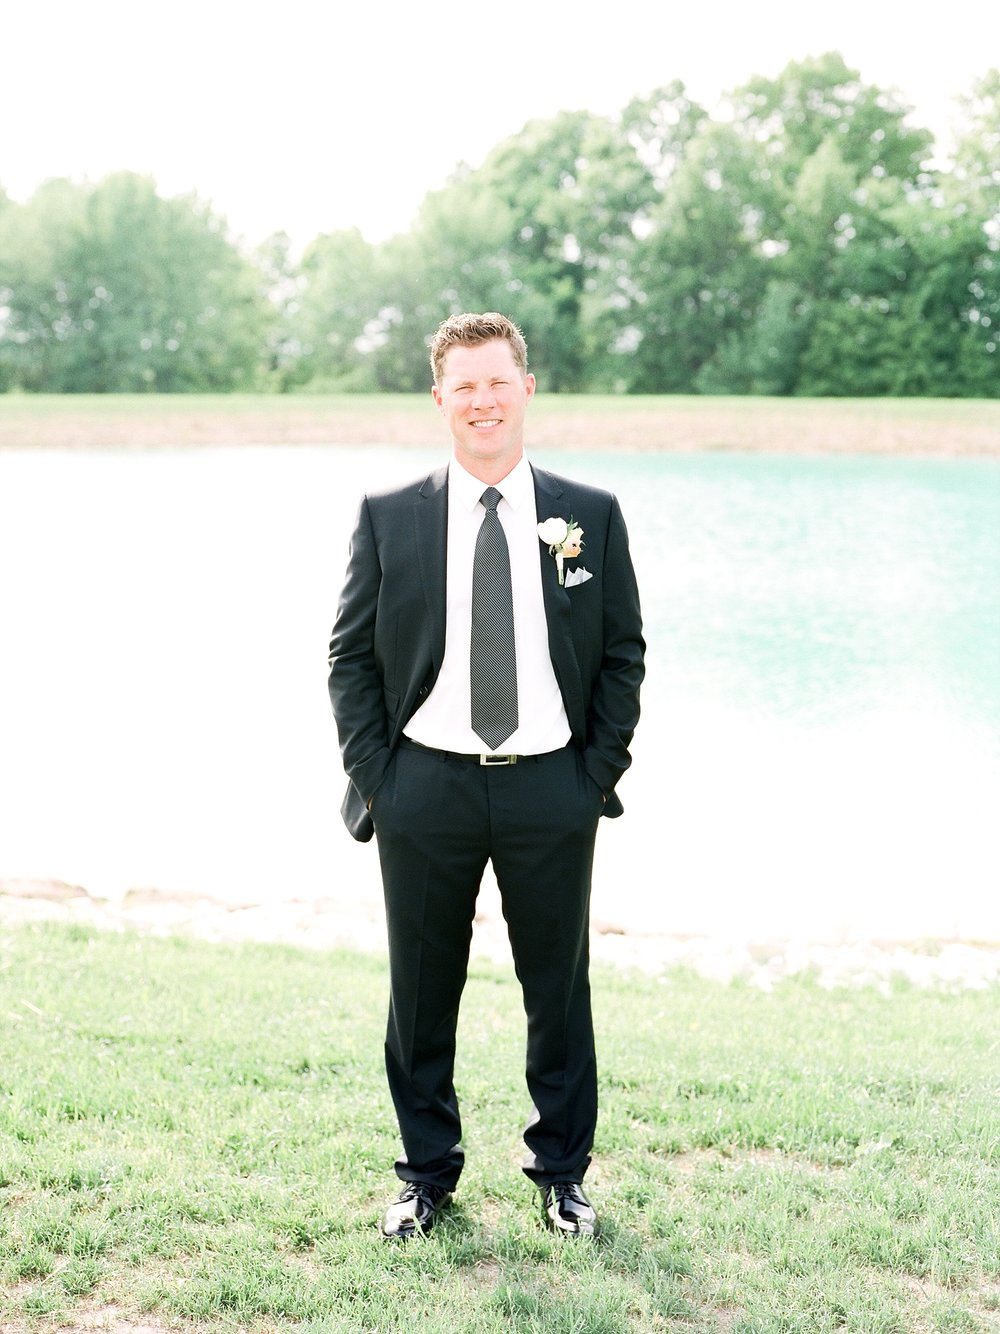 Textural Organic Wedding in All White Venue by Kelsi Kliethermes Wedding Photographer - Missouri, Midwest, and Destinations_0040.jpg